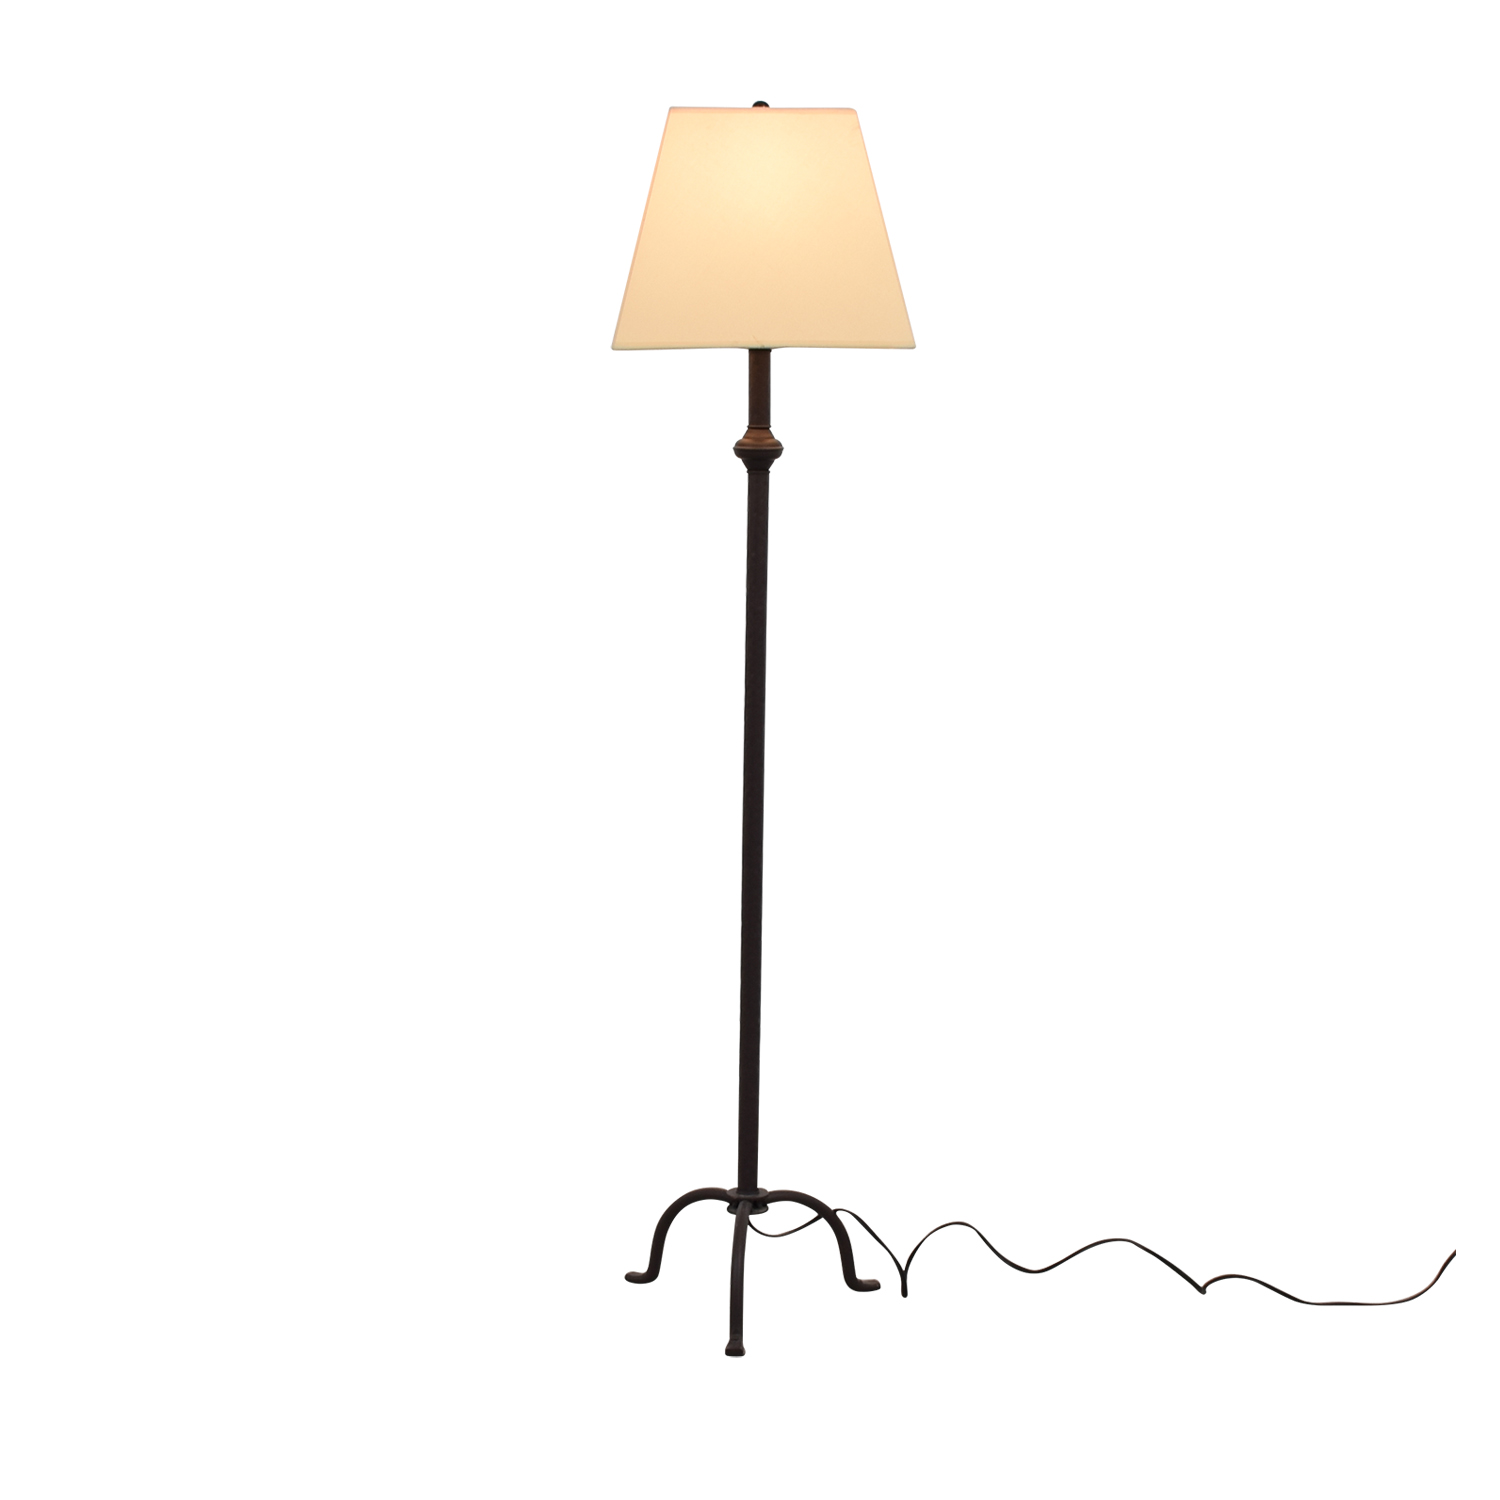 Pottery Barn Pottery Barn Floor Lamp coupon